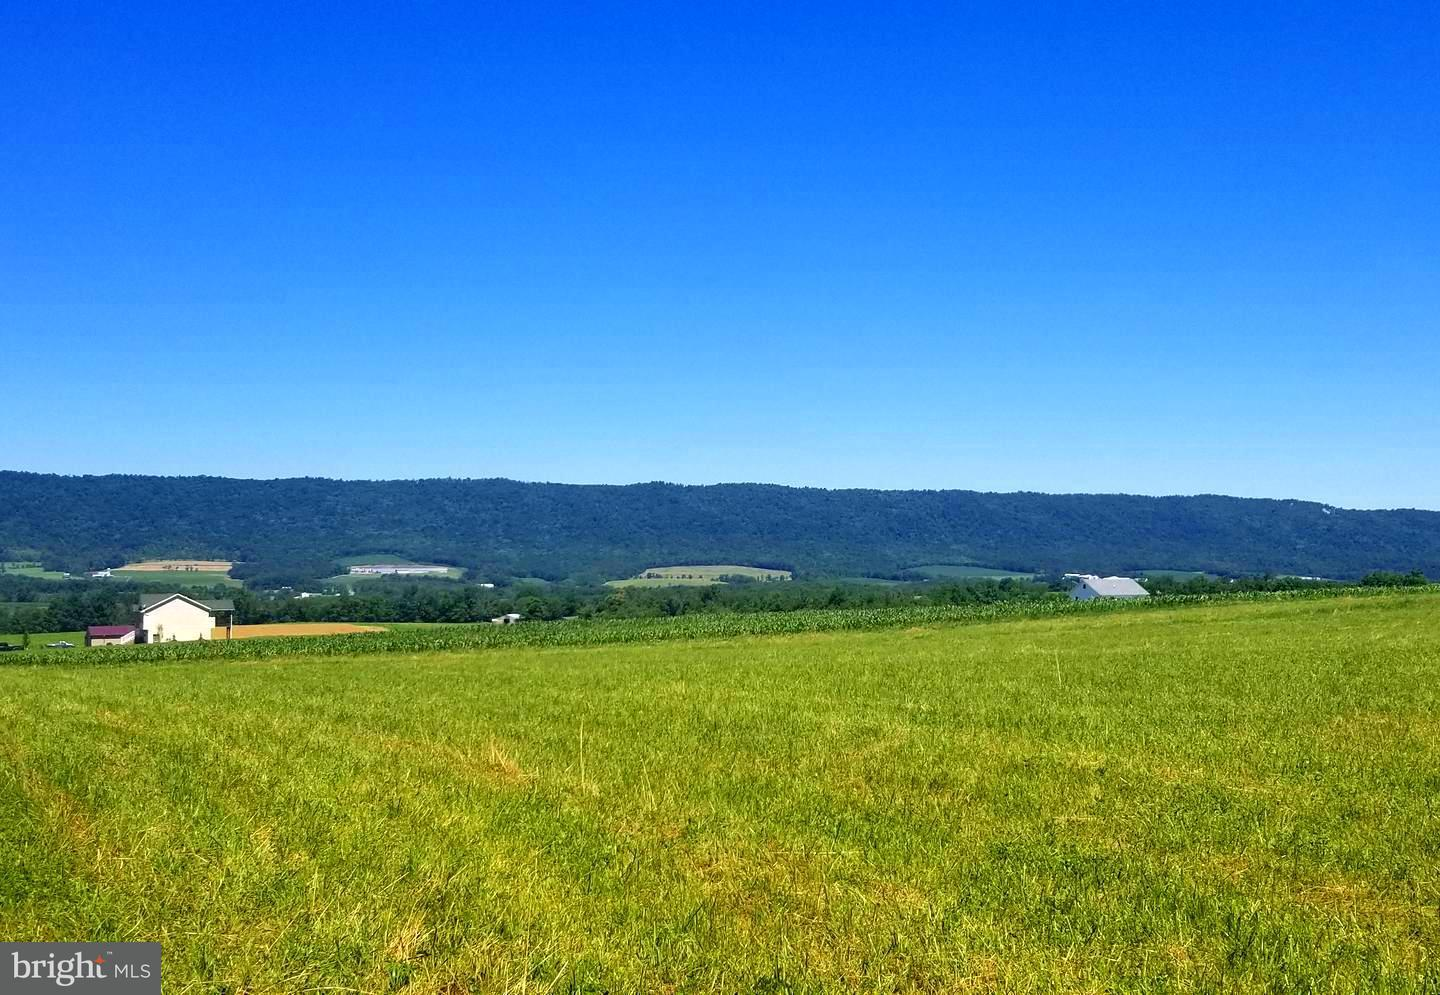 Land for Sale at Parson Rd Dry Run, Pennsylvania 17220 United States